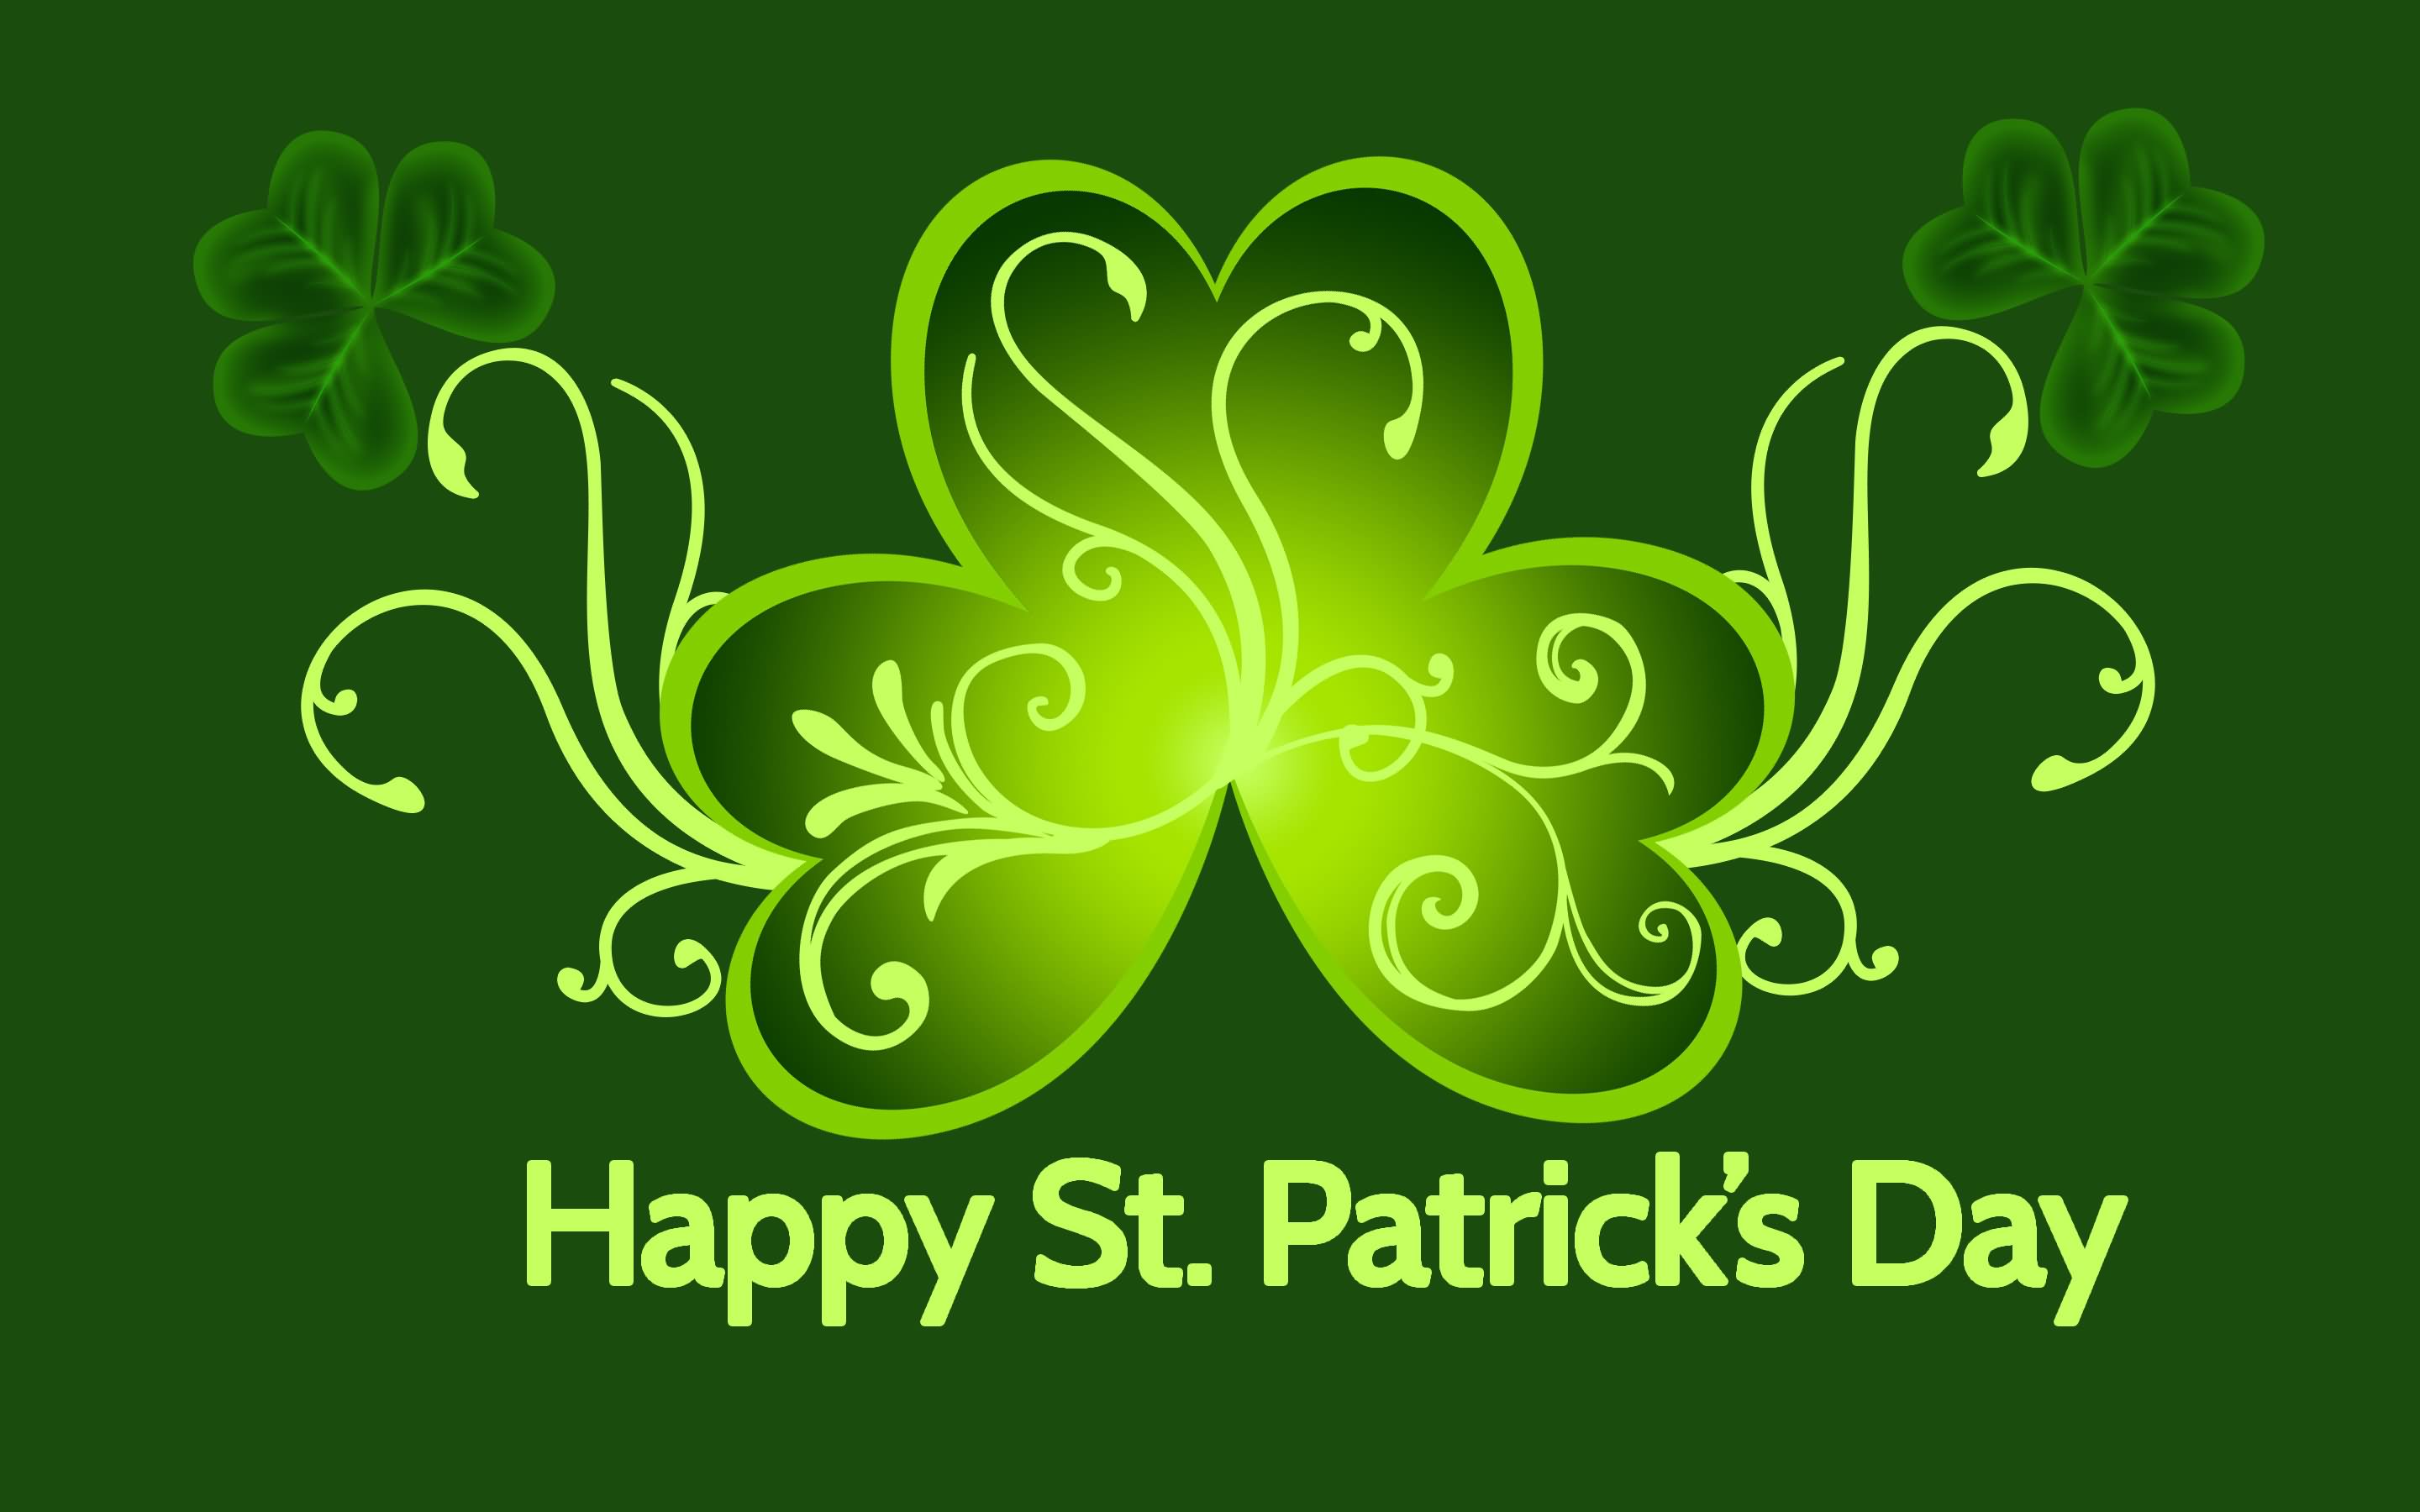 25 Saint Patrick's Day Wallpapers